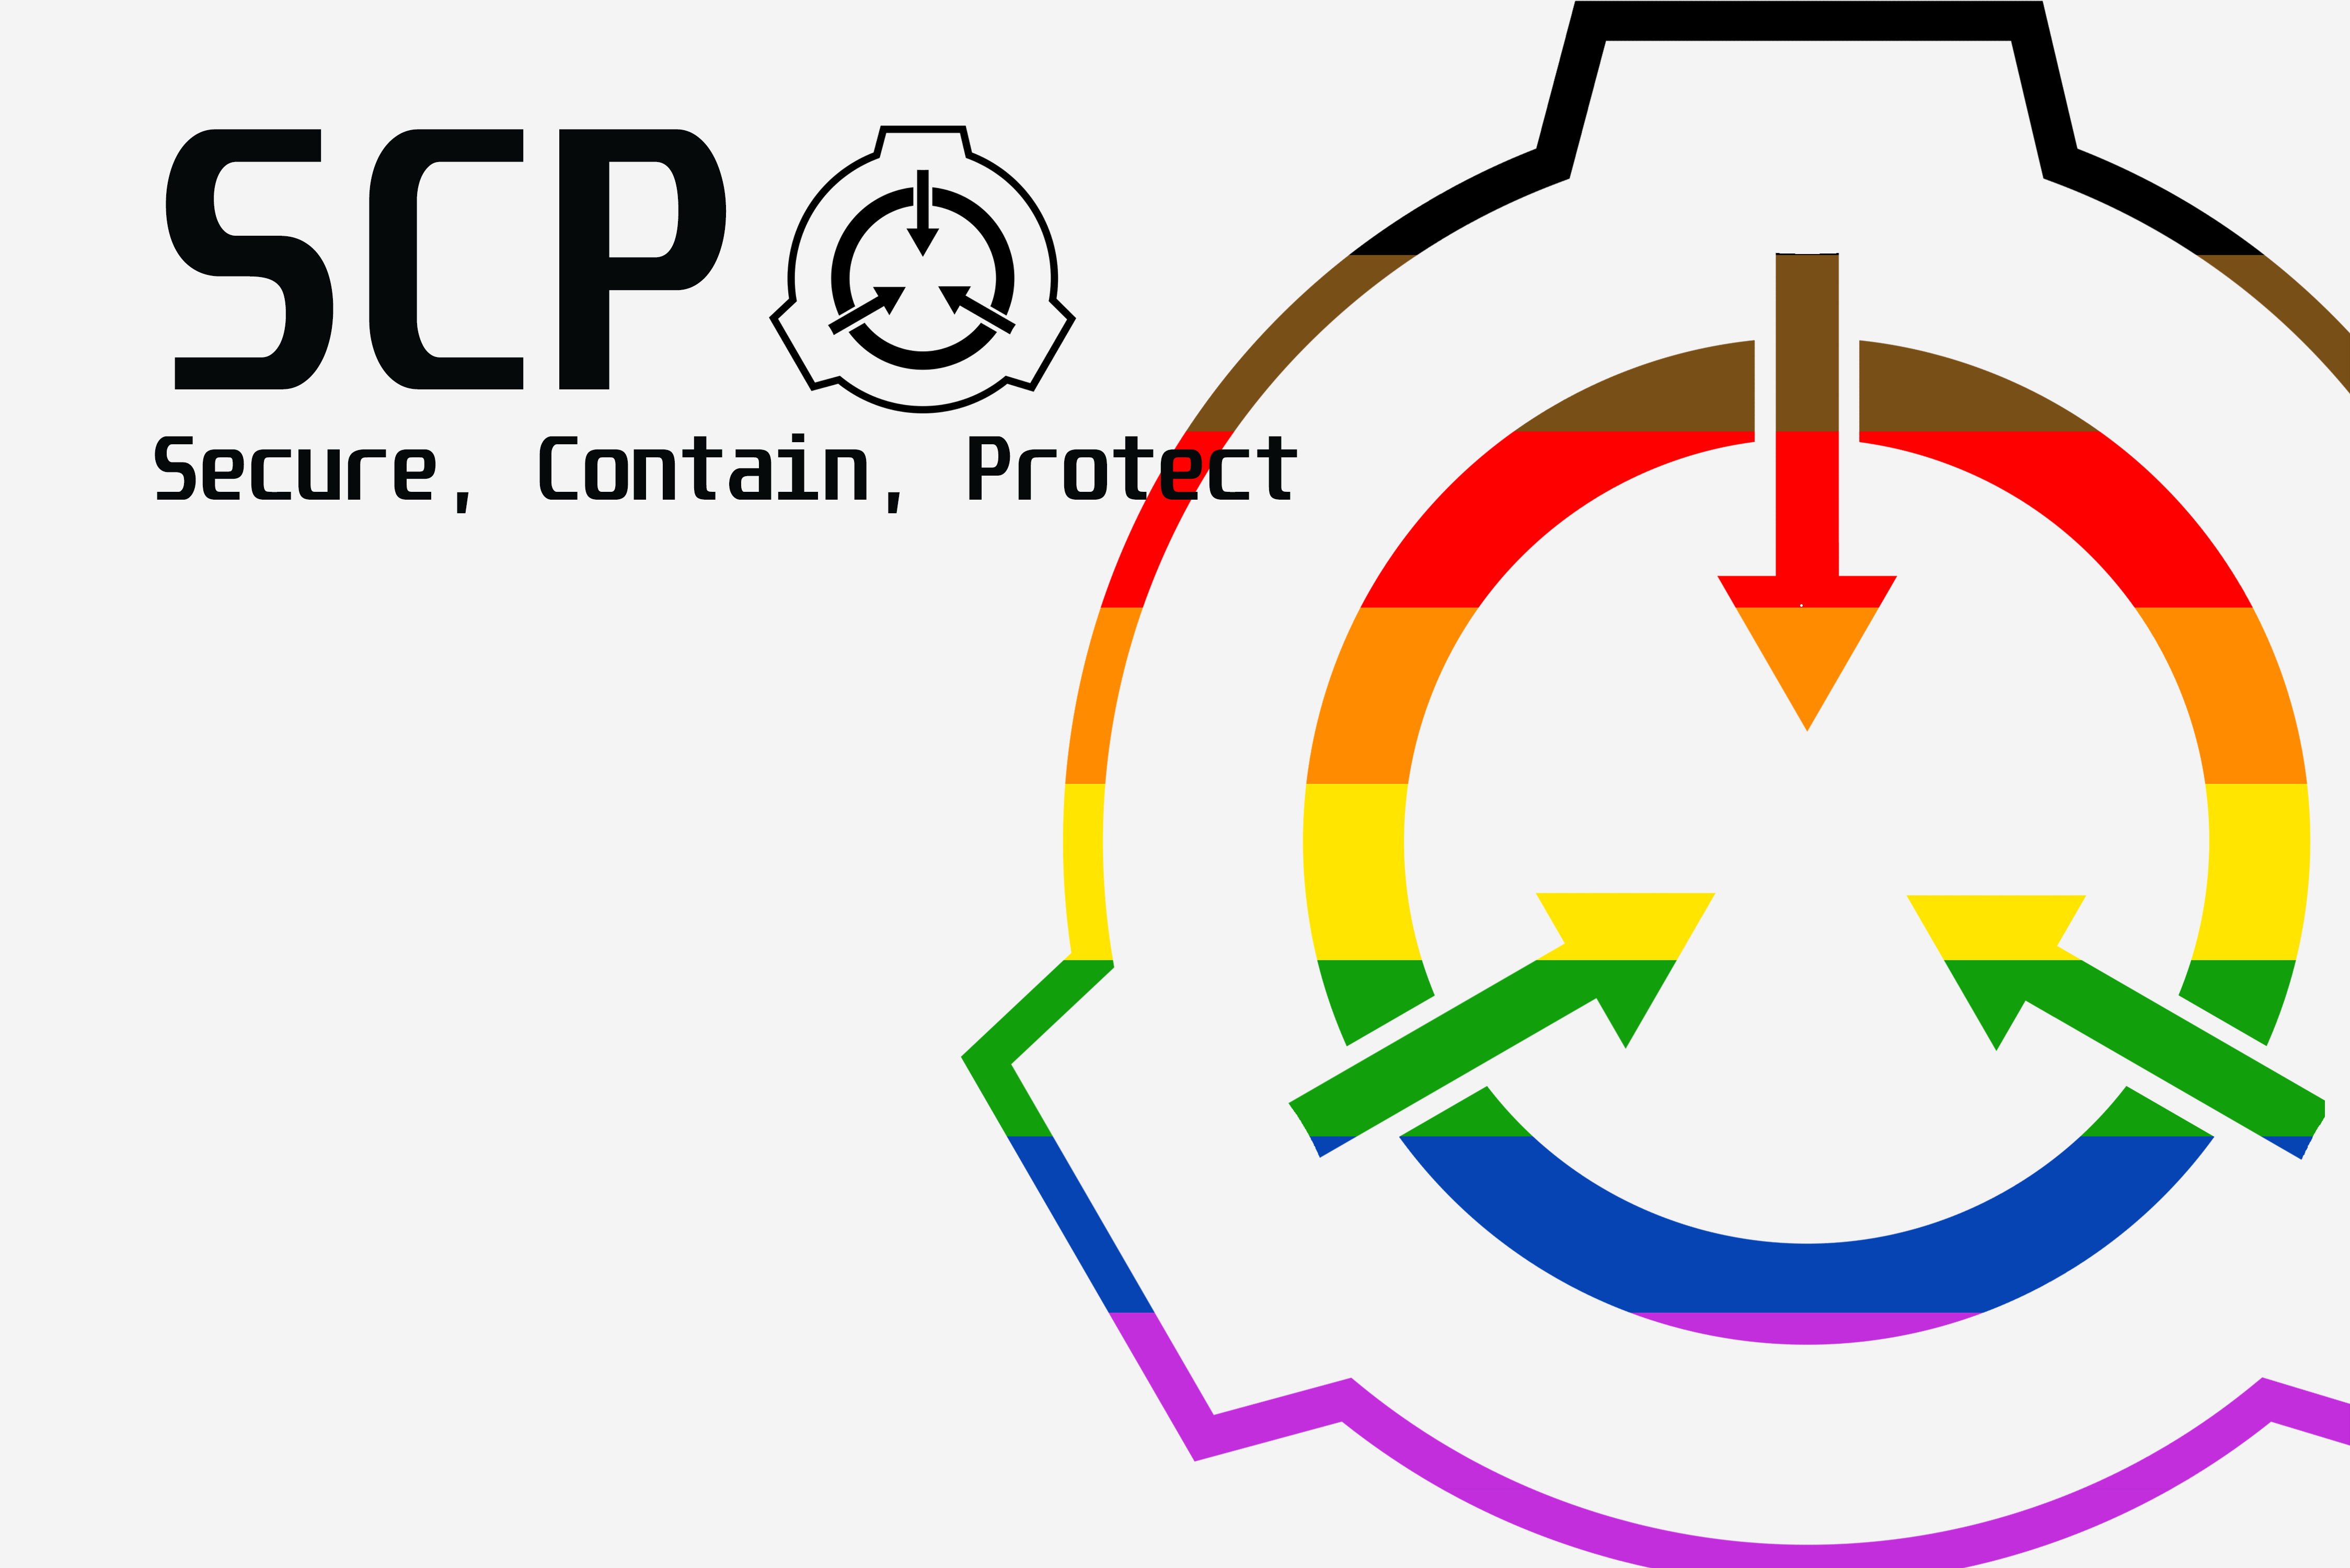 SCP-Ccard-Rainbow-07.png